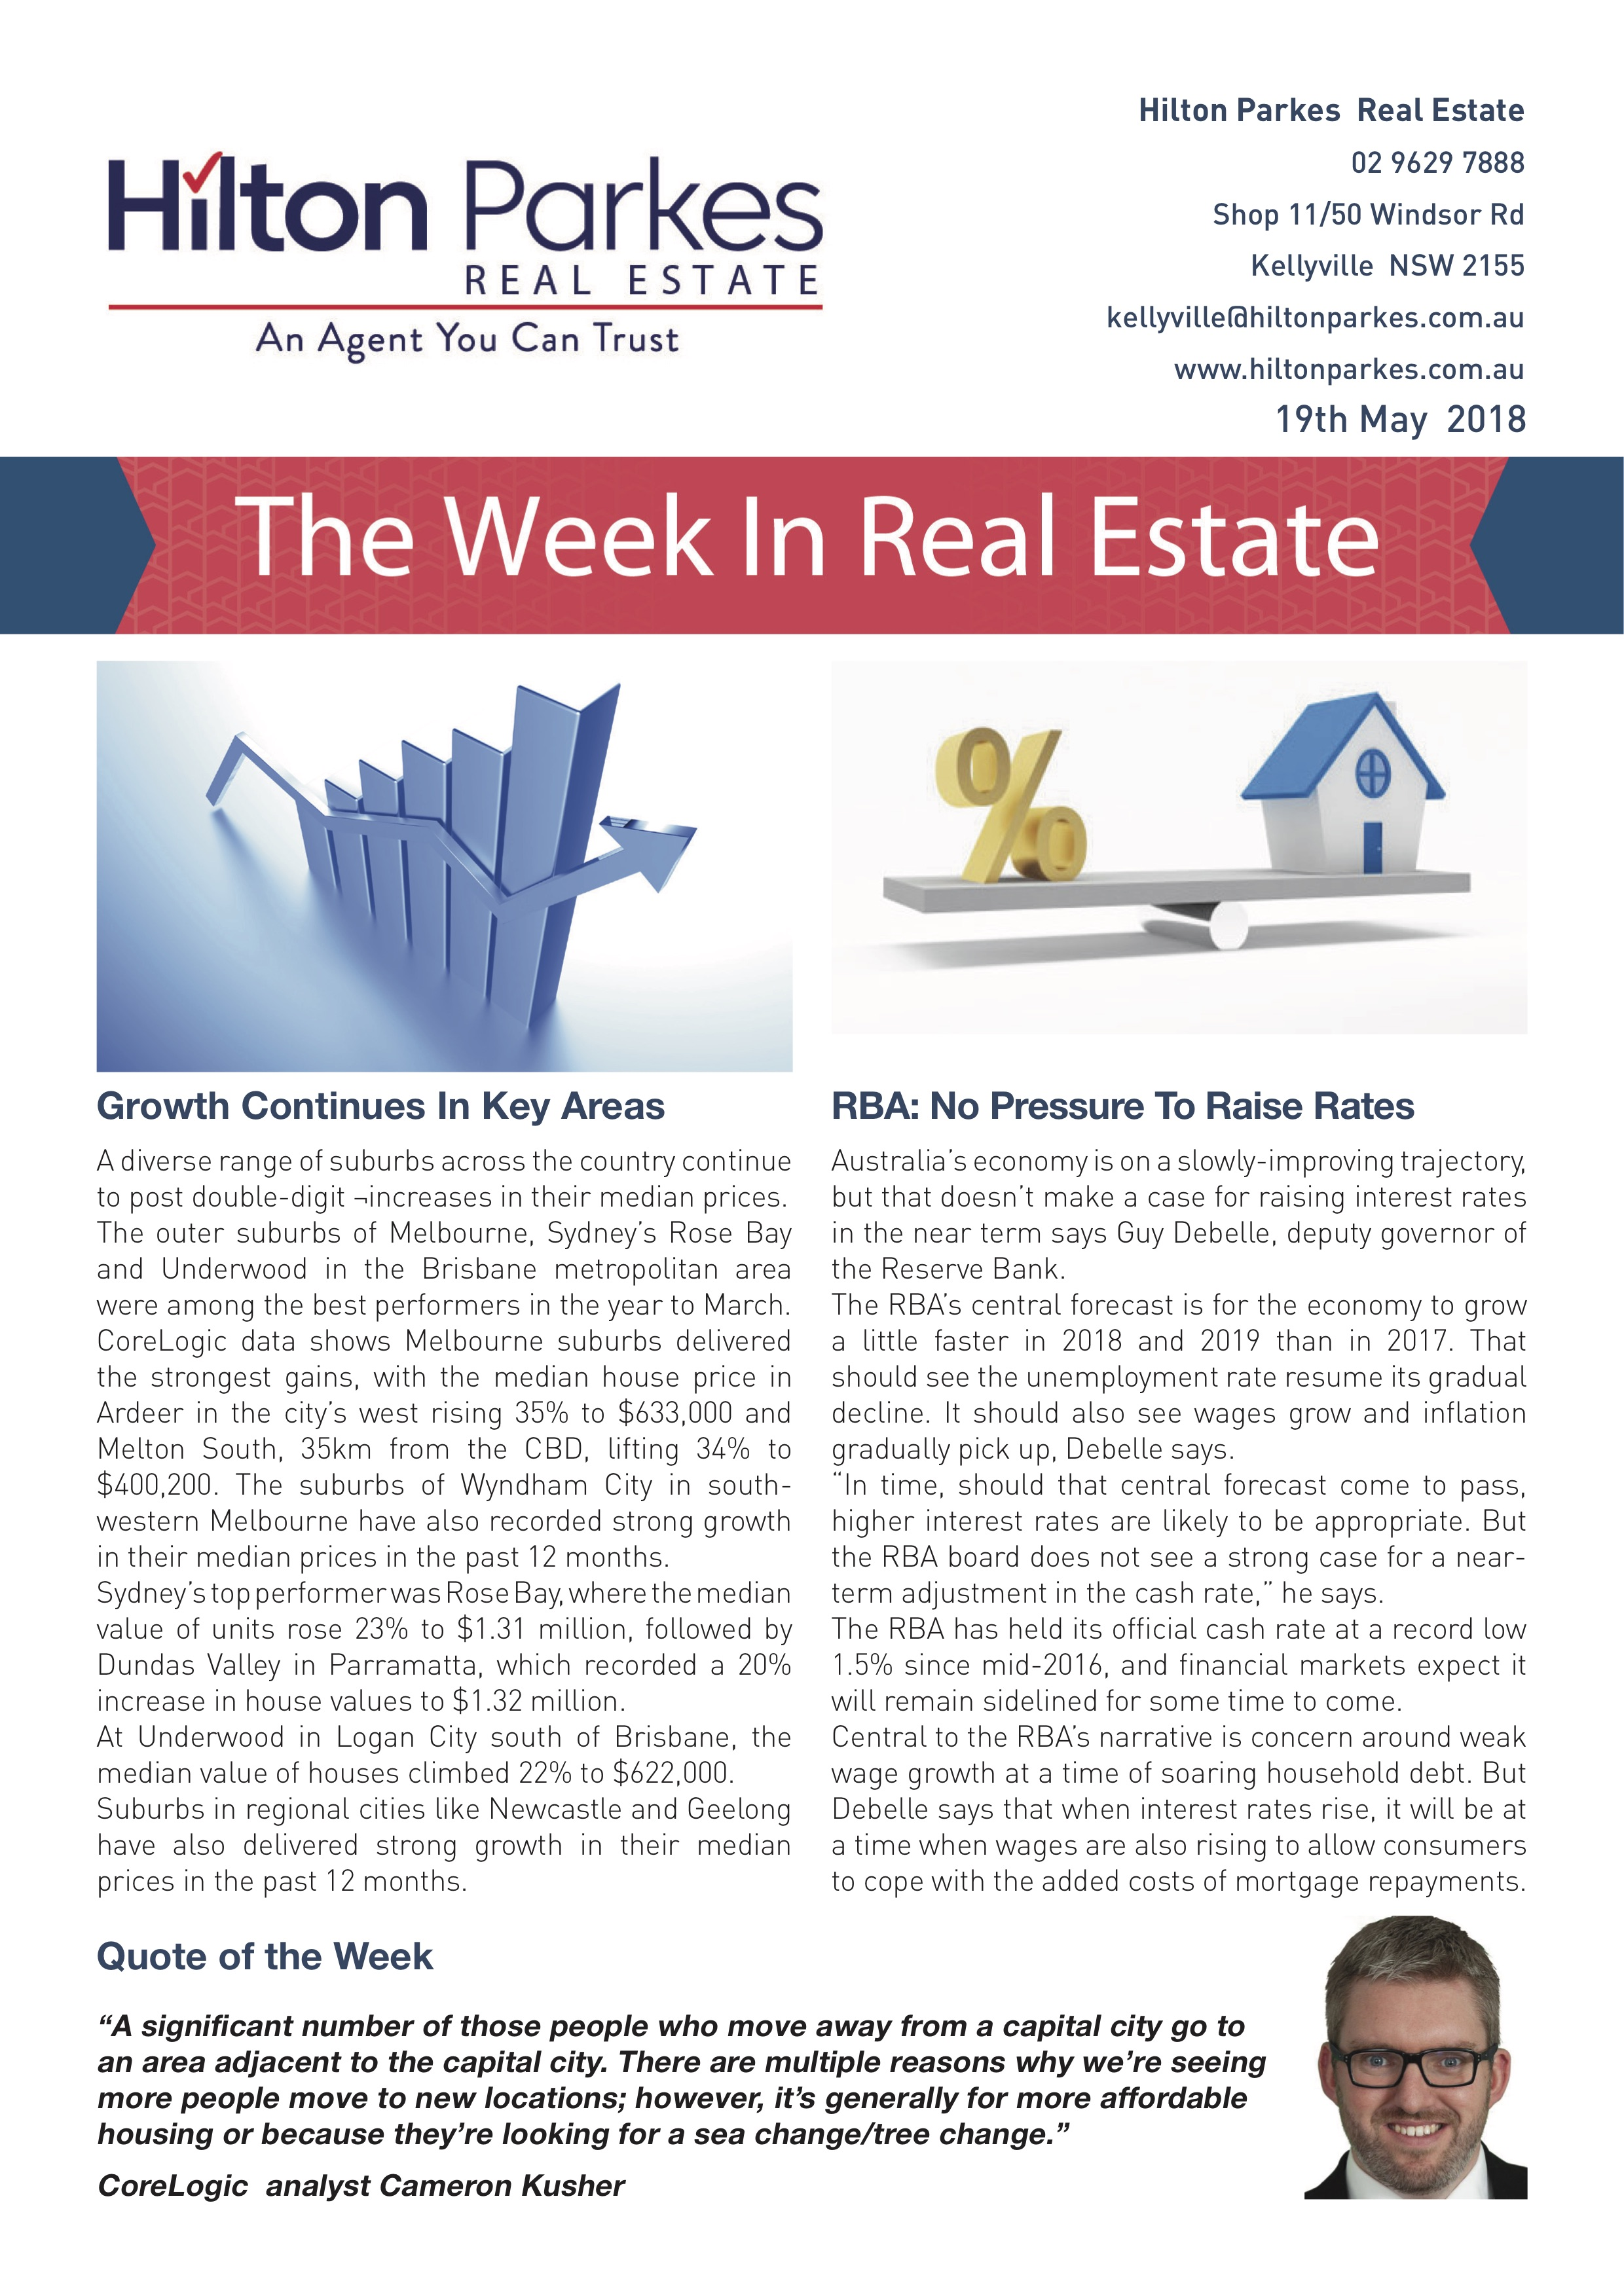 The week in real estate May 19th